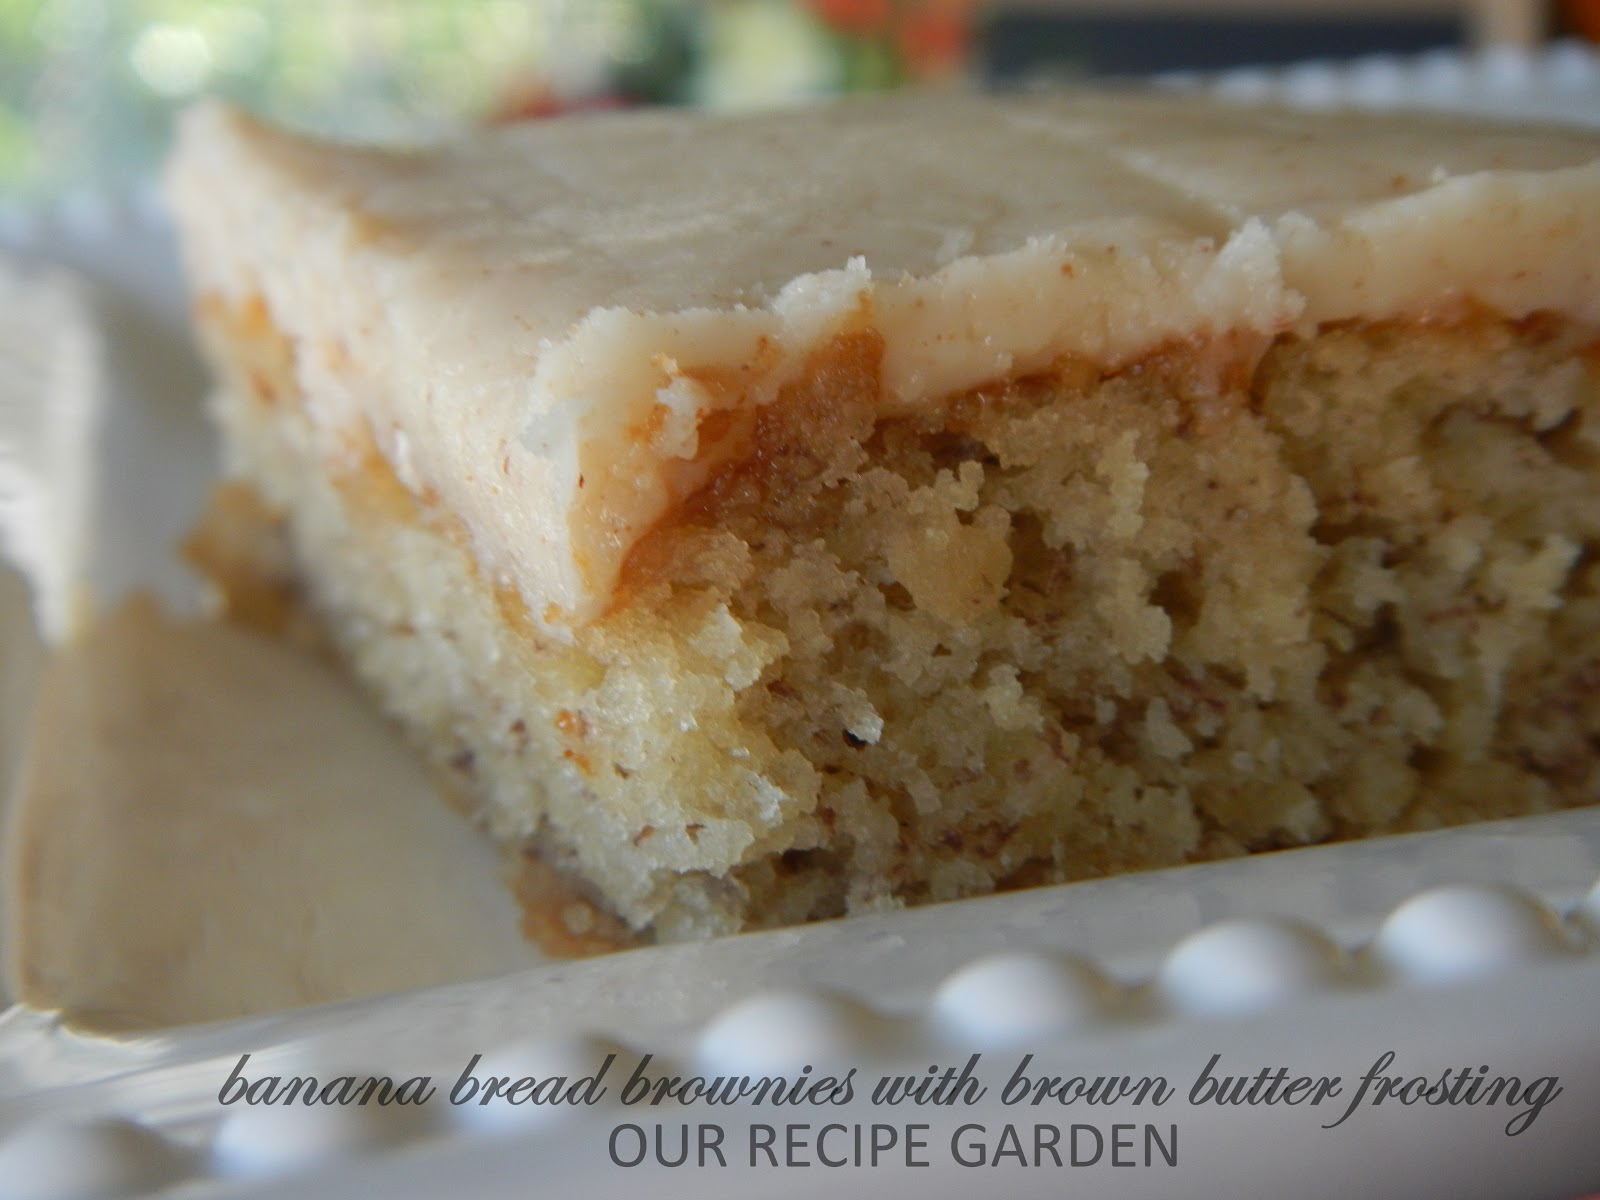 Our Recipe Garden Banana Bread Brownies With Brown Butter